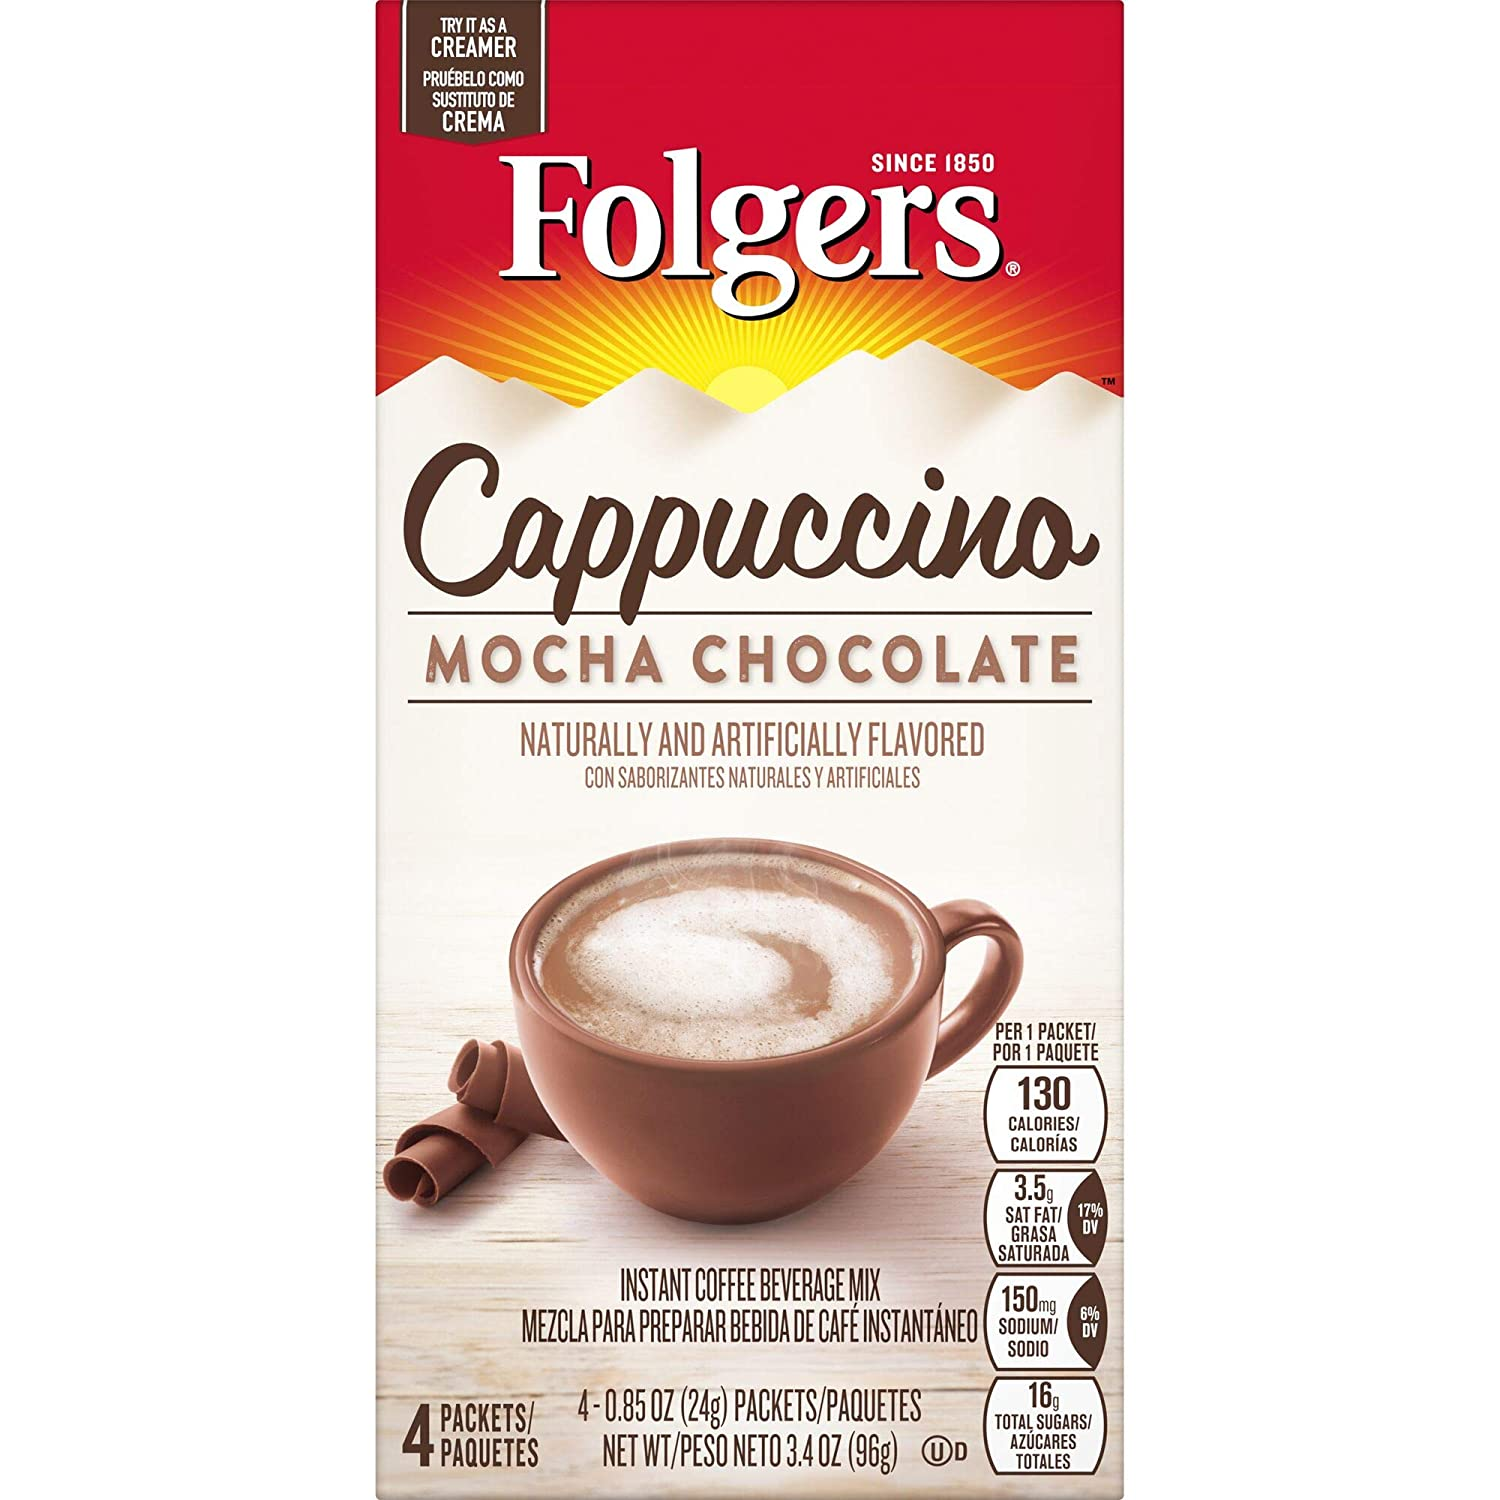 Folgers Mocha Chocolate Flavored Cappuccino Mix Packets.85 Ounce, 4 Packets, Packaging May Vary